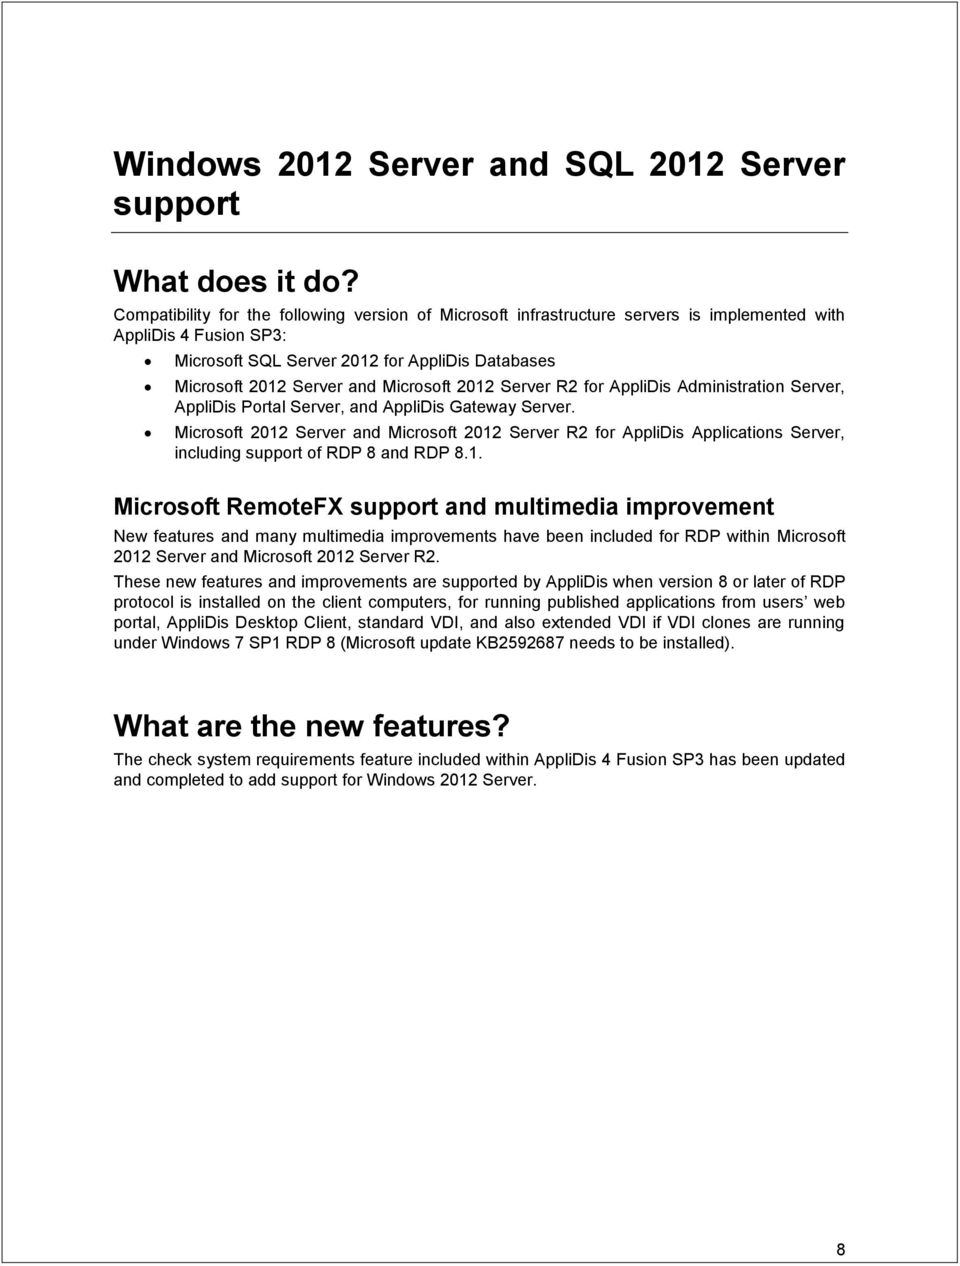 Microsoft 2012 Server and Microsoft 2012 Server R2 for AppliDis Applications Server, including support of RDP 8 and RDP 8.1. Microsoft RemoteFX support and multimedia improvement New features and many multimedia improvements have been included for RDP within Microsoft 2012 Server and Microsoft 2012 Server R2.